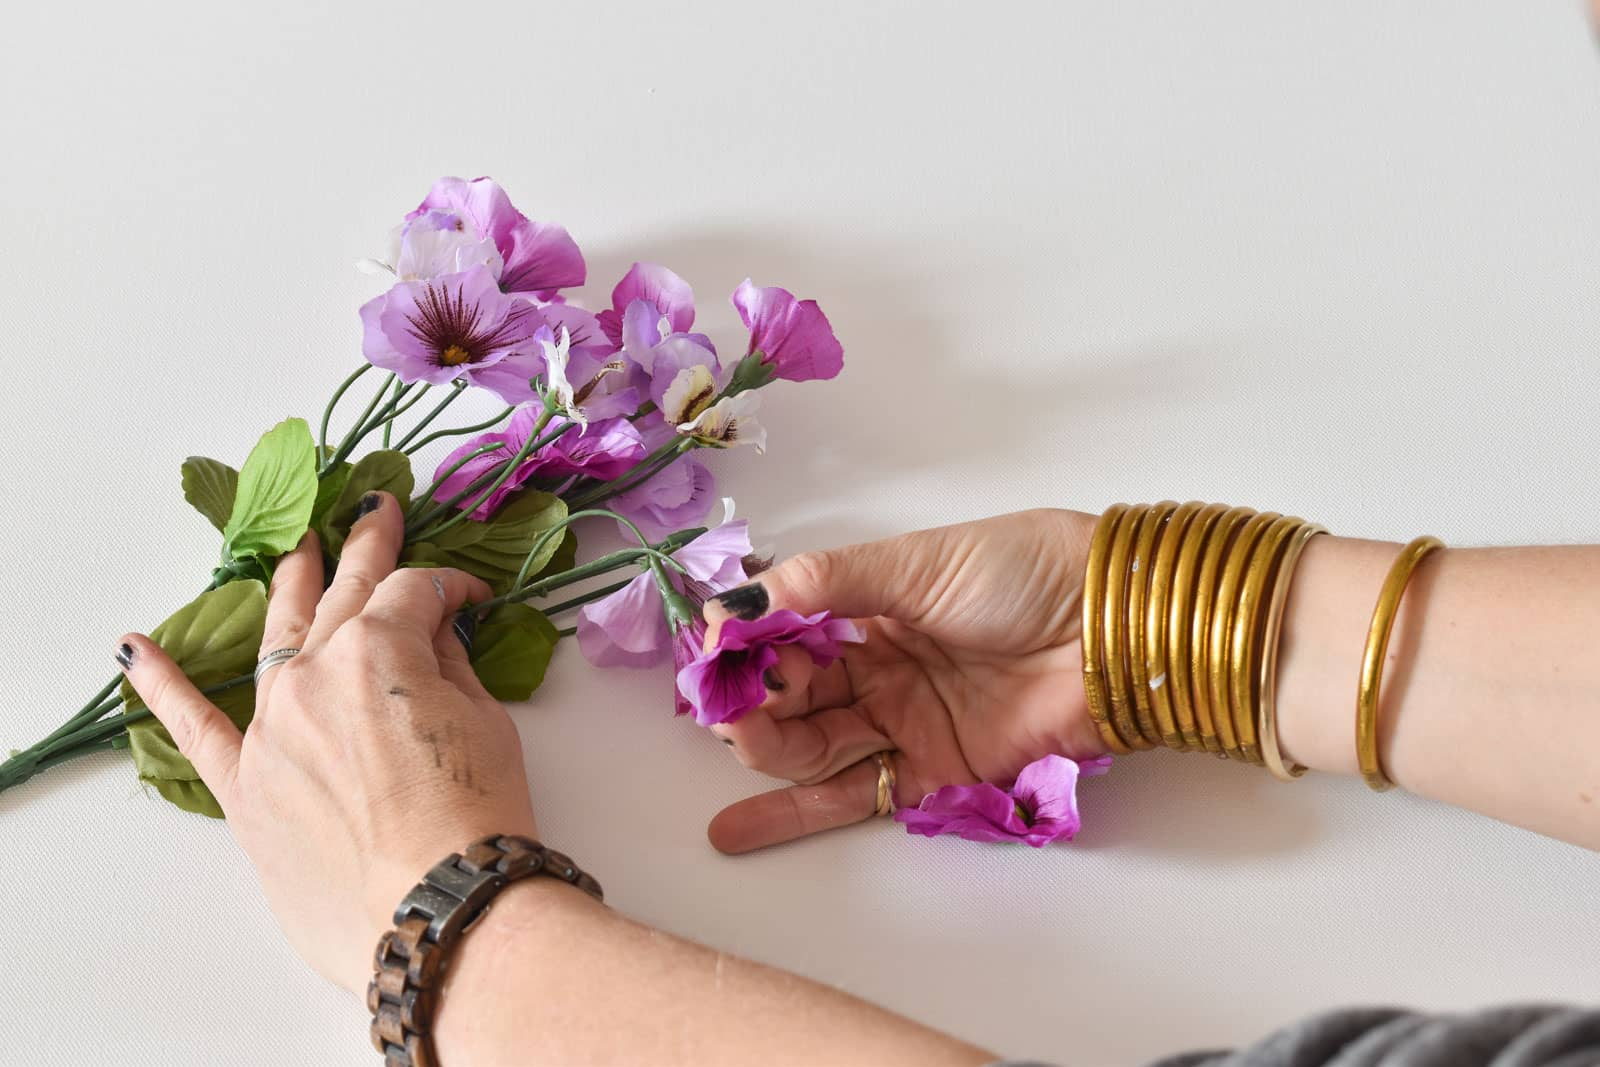 Remove the flowers from the stems